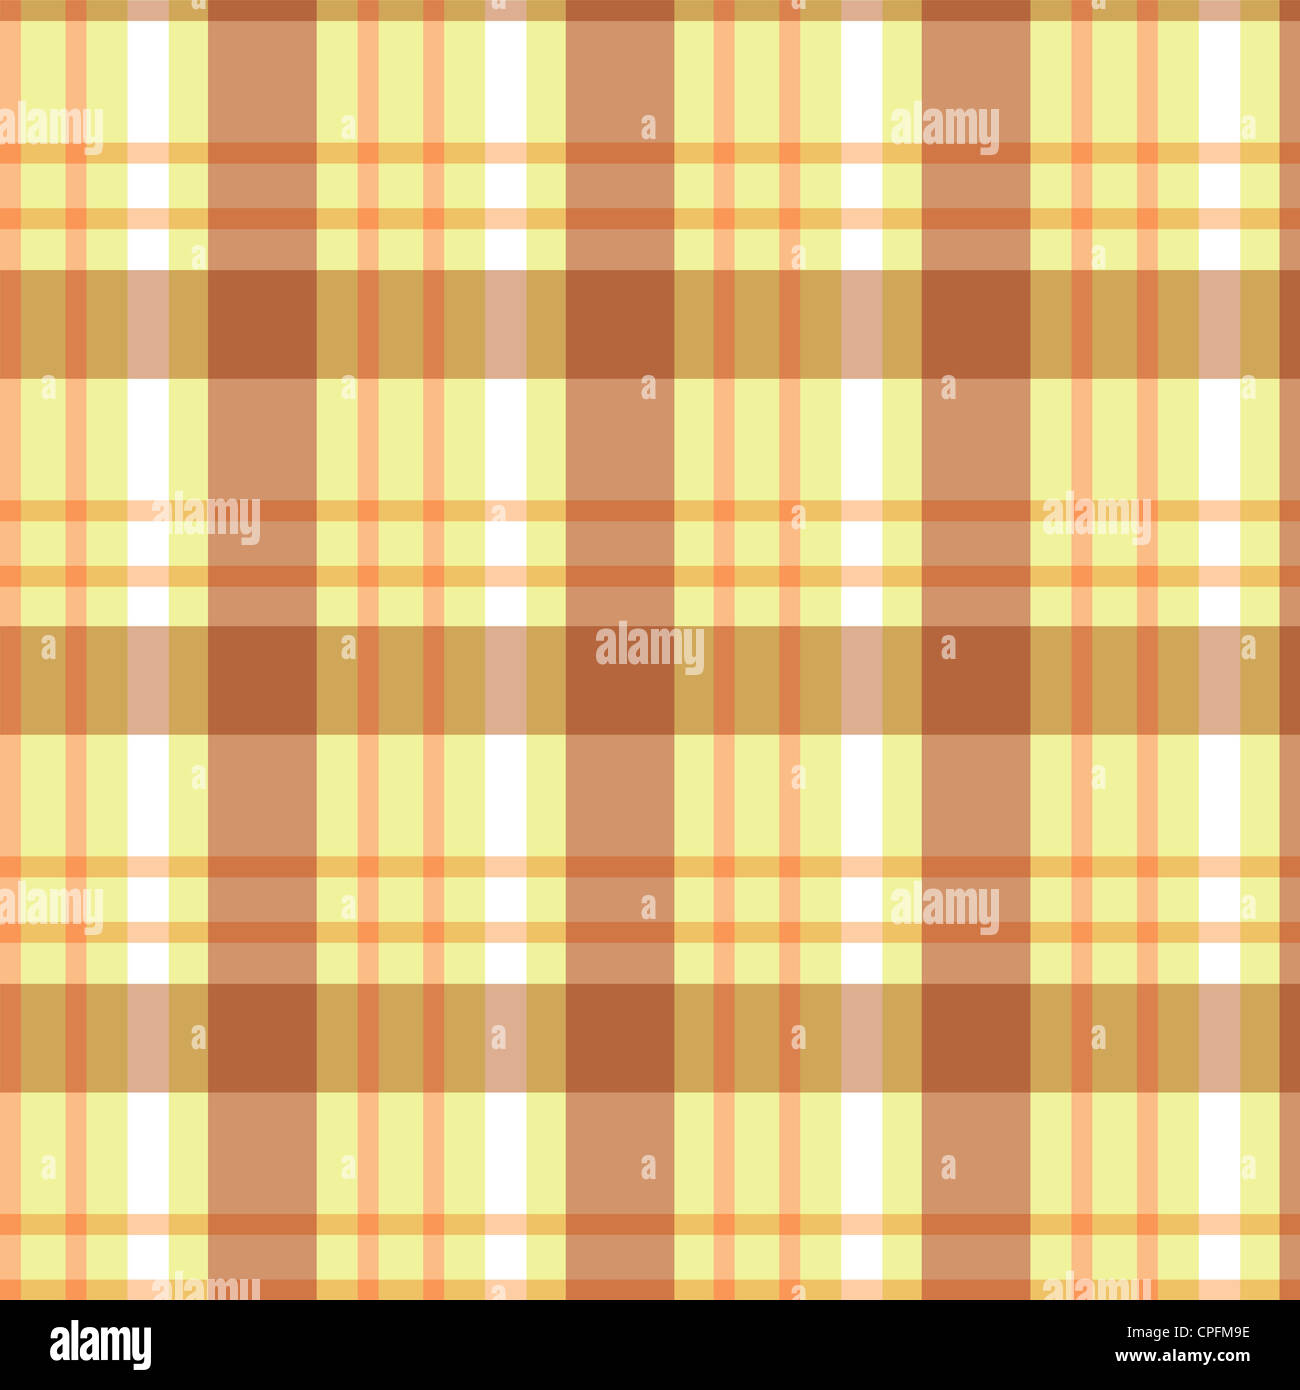 Plaid pattern in shades of brown Stock Photo